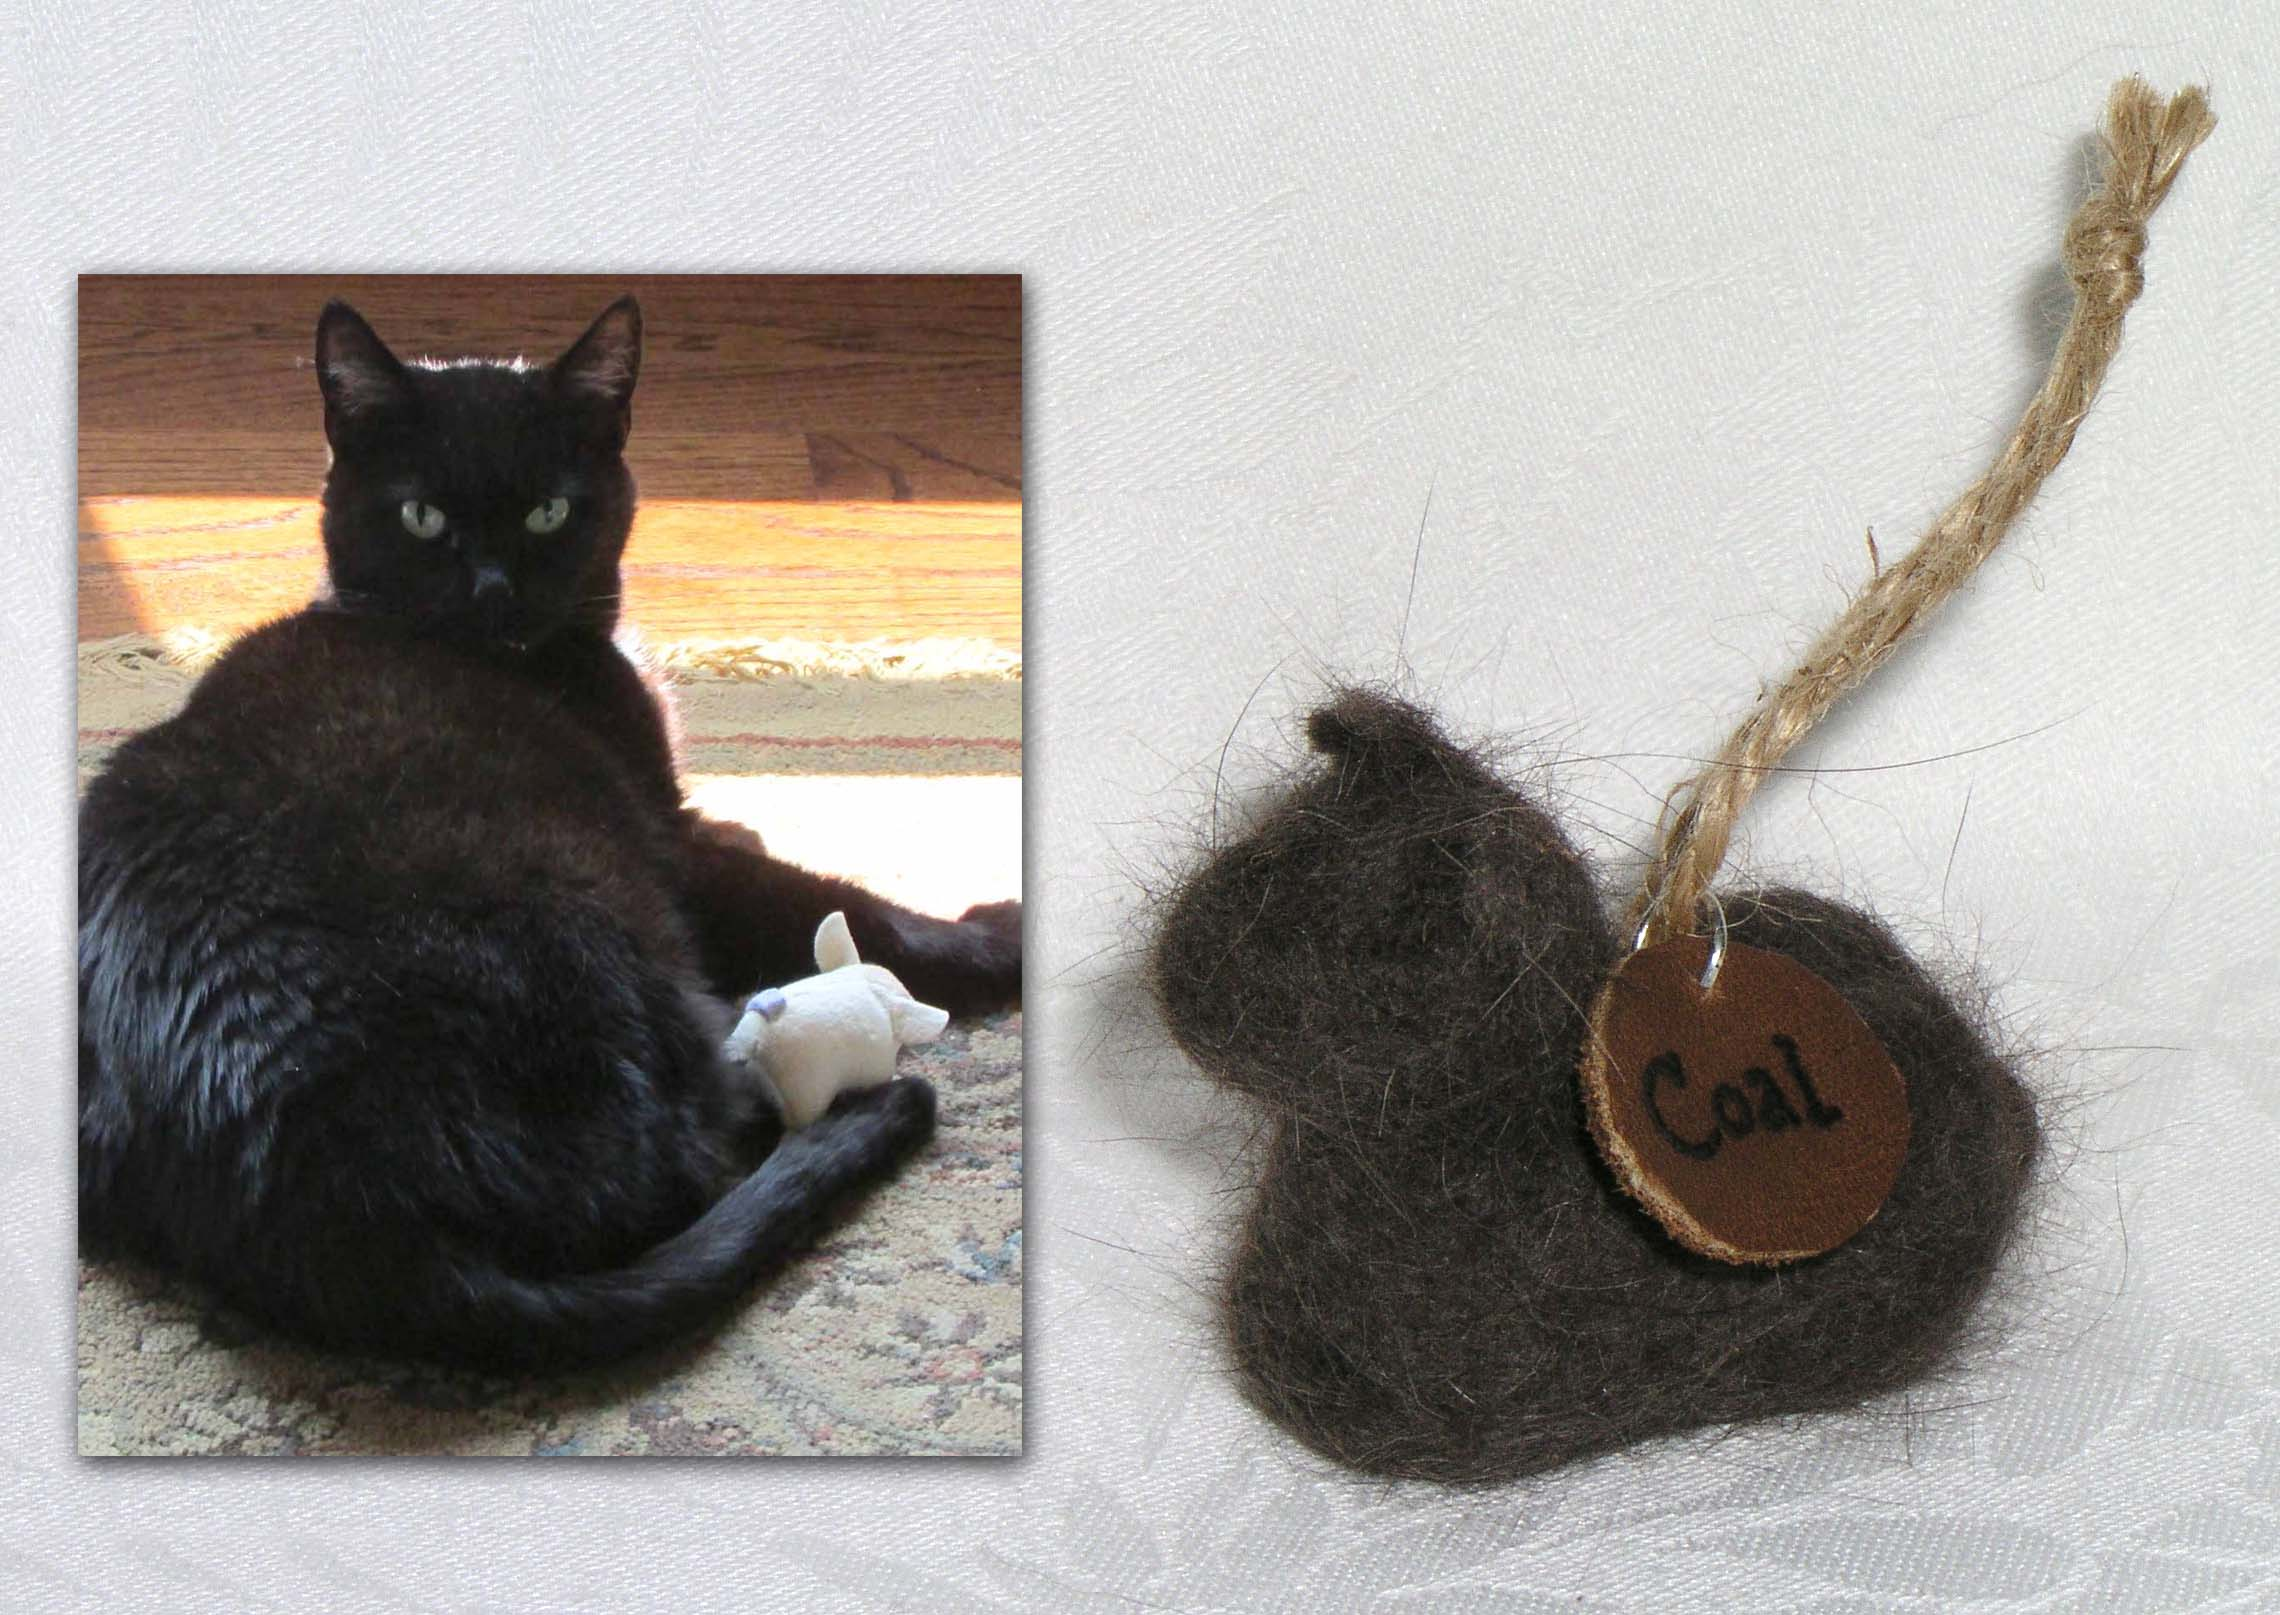 Color of cats fur - Needle Felted Cats Will Be The Color Of Your Cat S Undercoat And Not The Color Of Their Guard Hair The Fur Which You